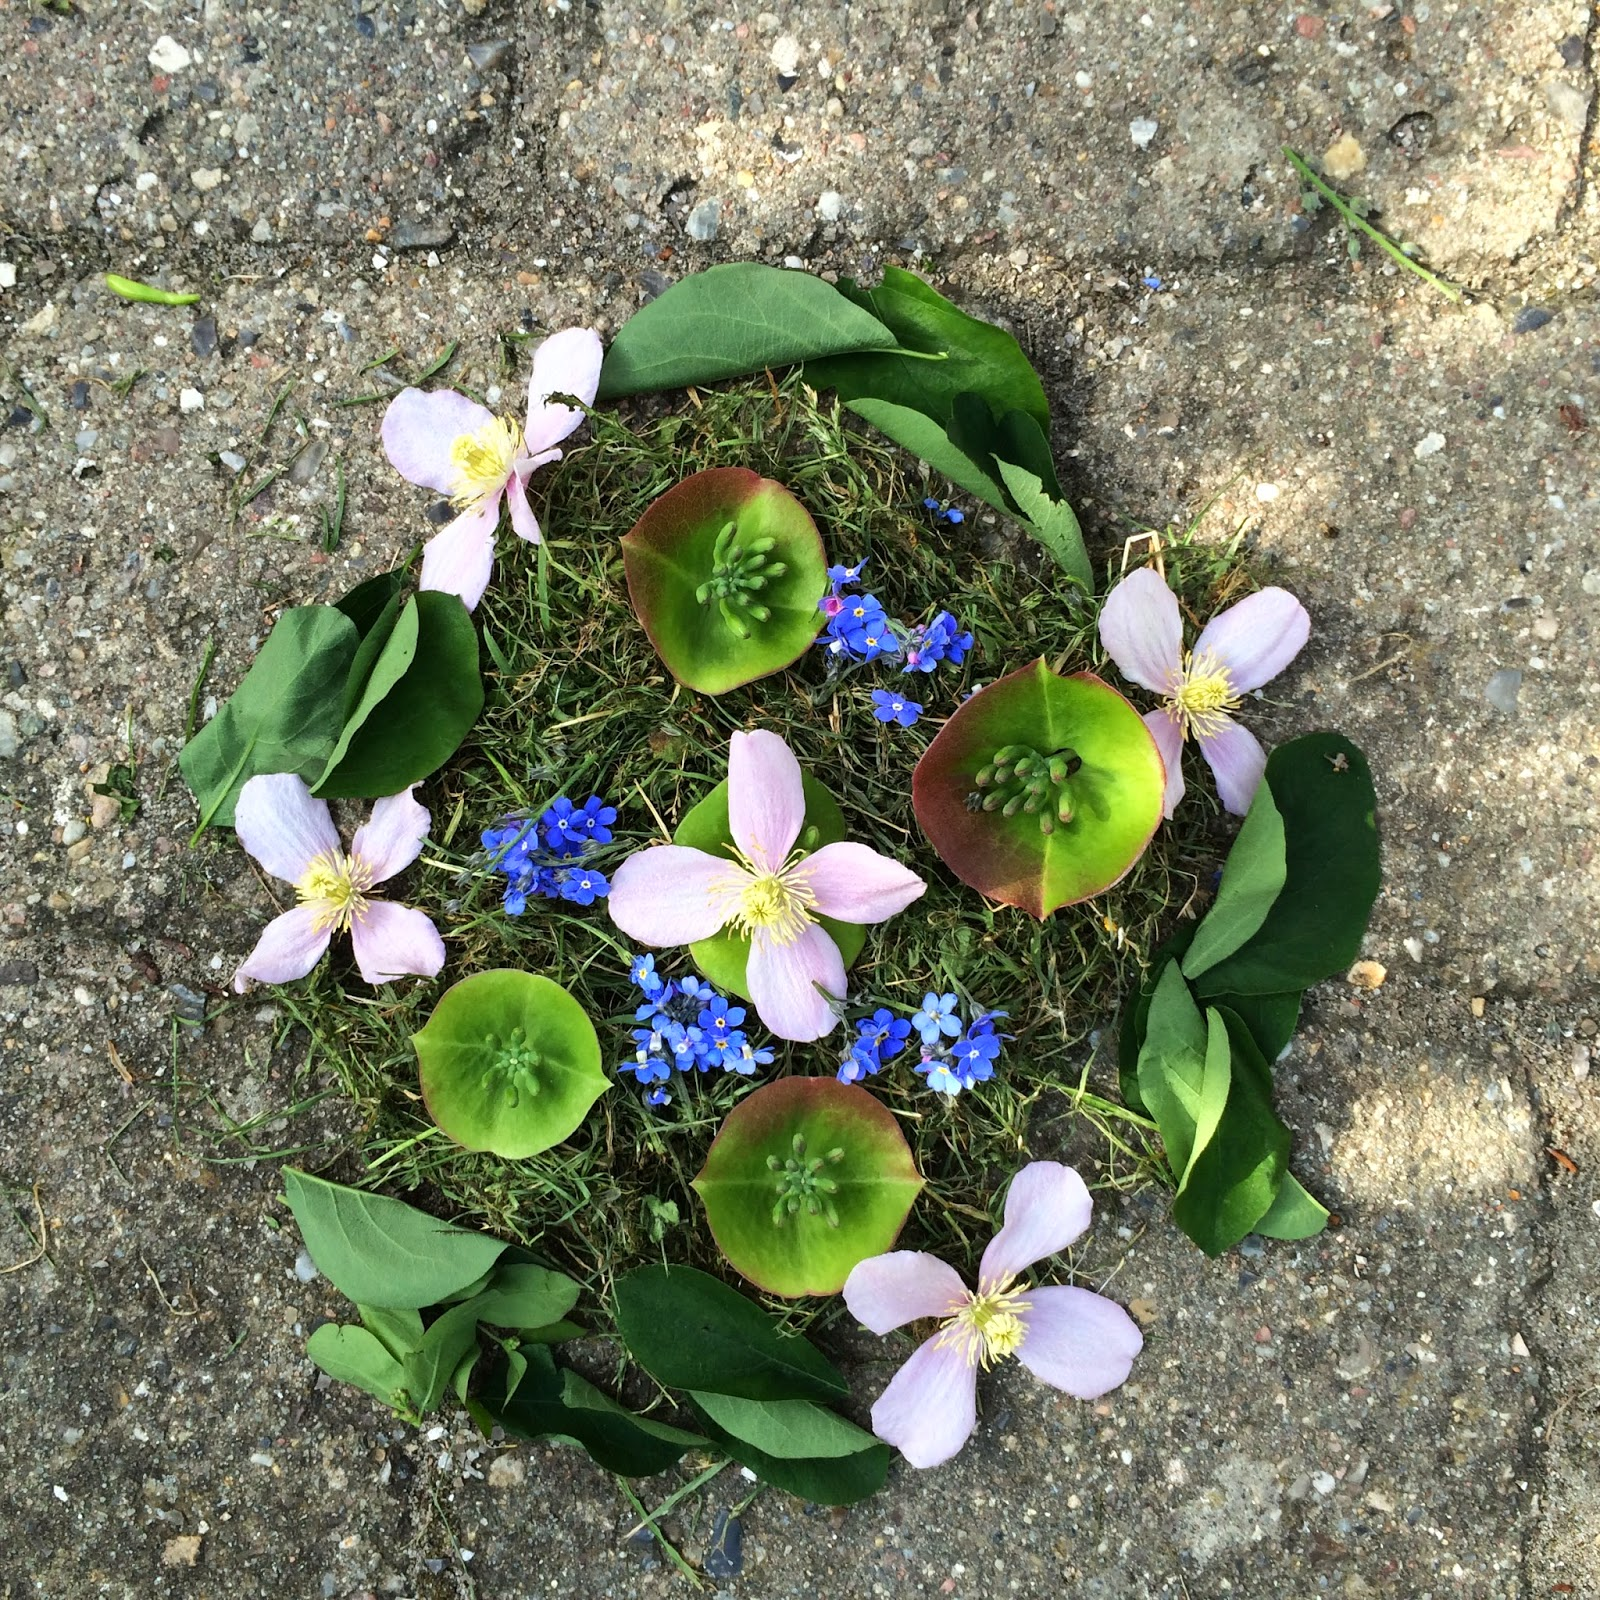 Landart; natural mandalas made by kids at artschool in Horsens